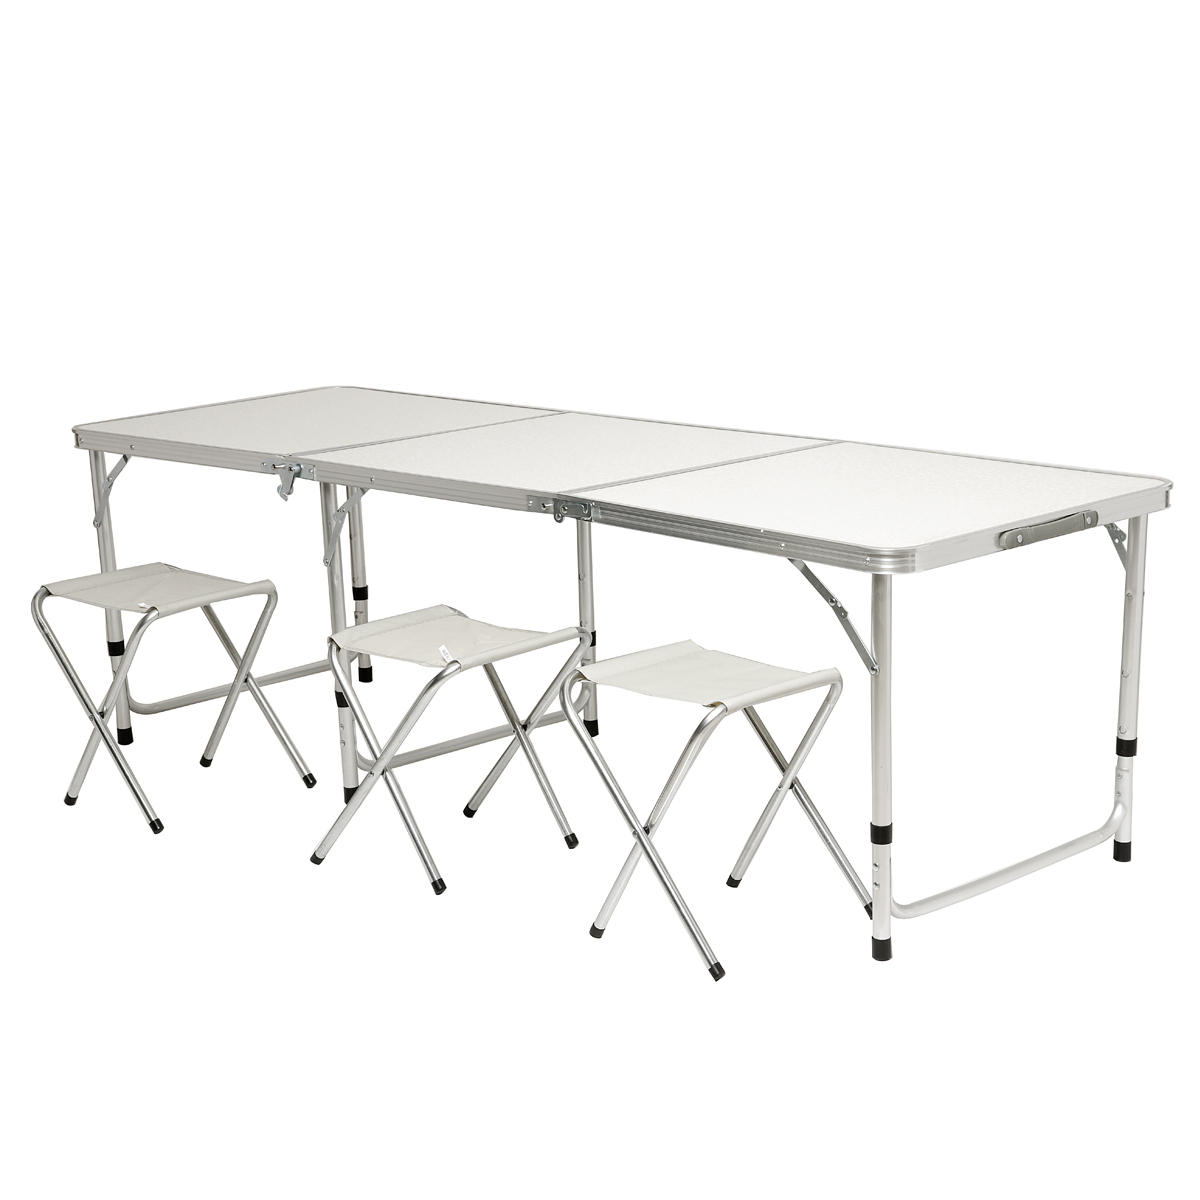 Portable Folding Table Laptop Desk Study Table Aluminum Camping Table with Carrying Handle and  Adjustable Legs Table for Picnic Beach Outdoors